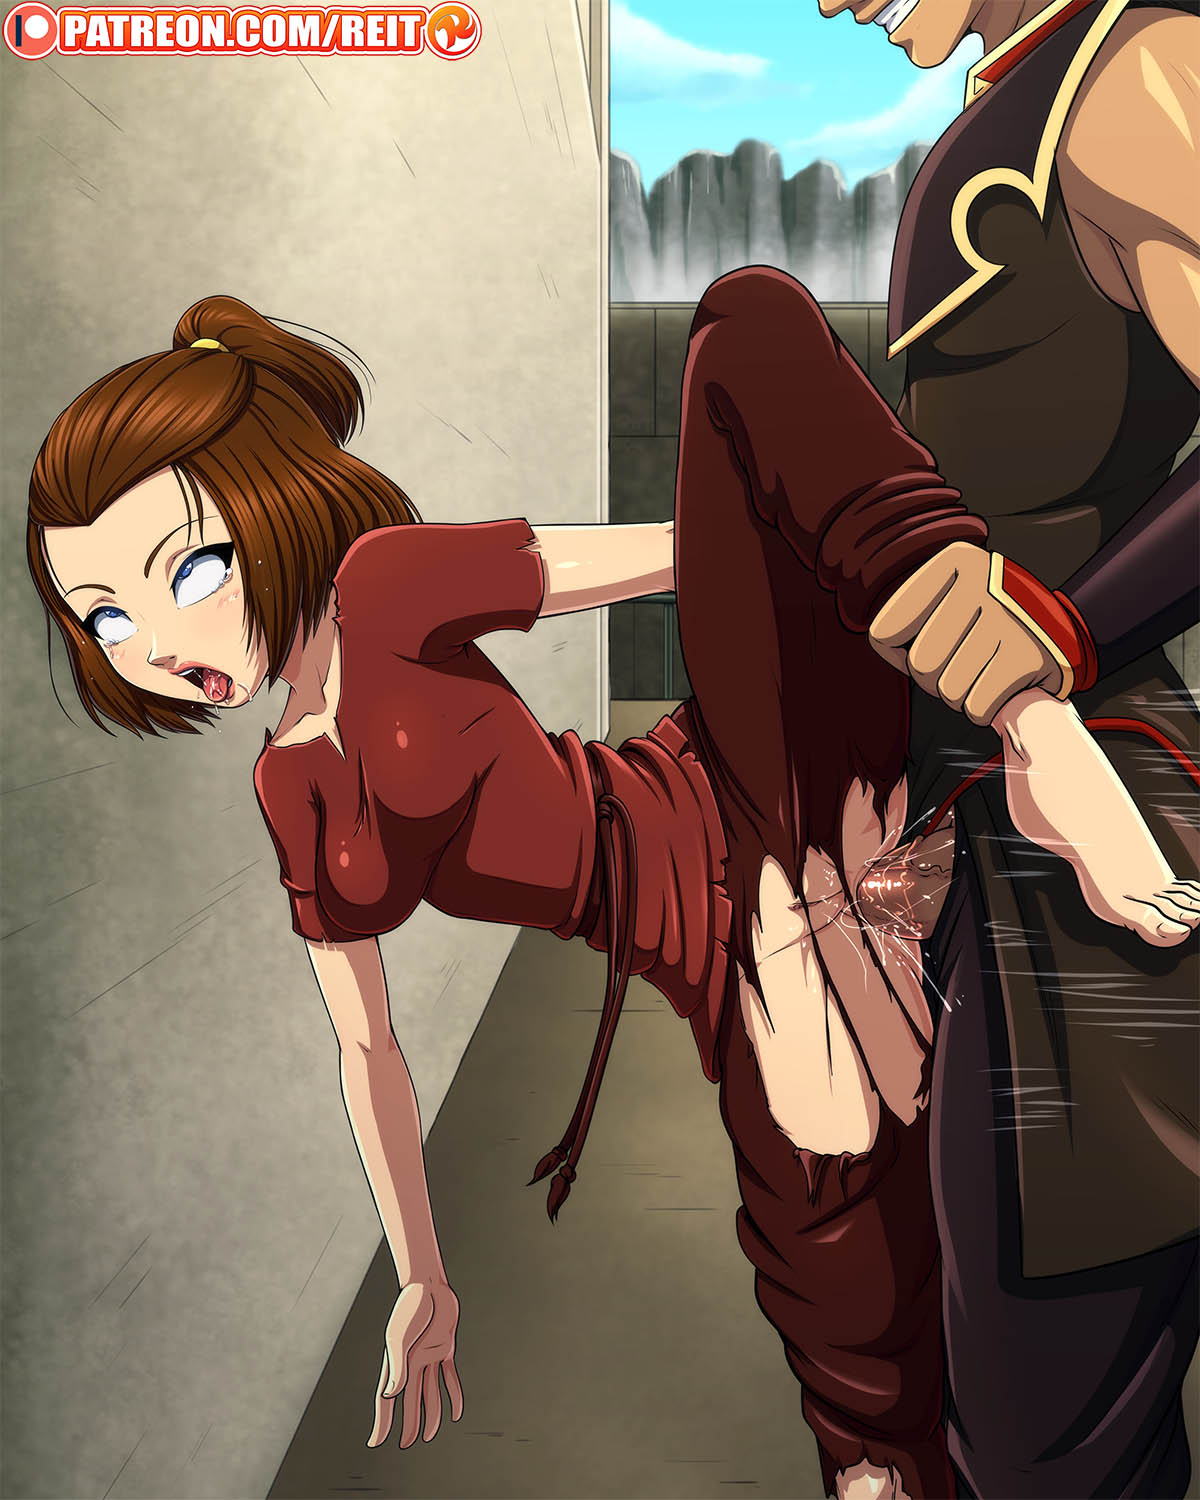 avatar: suki last airbender the So i can t play h uncensored